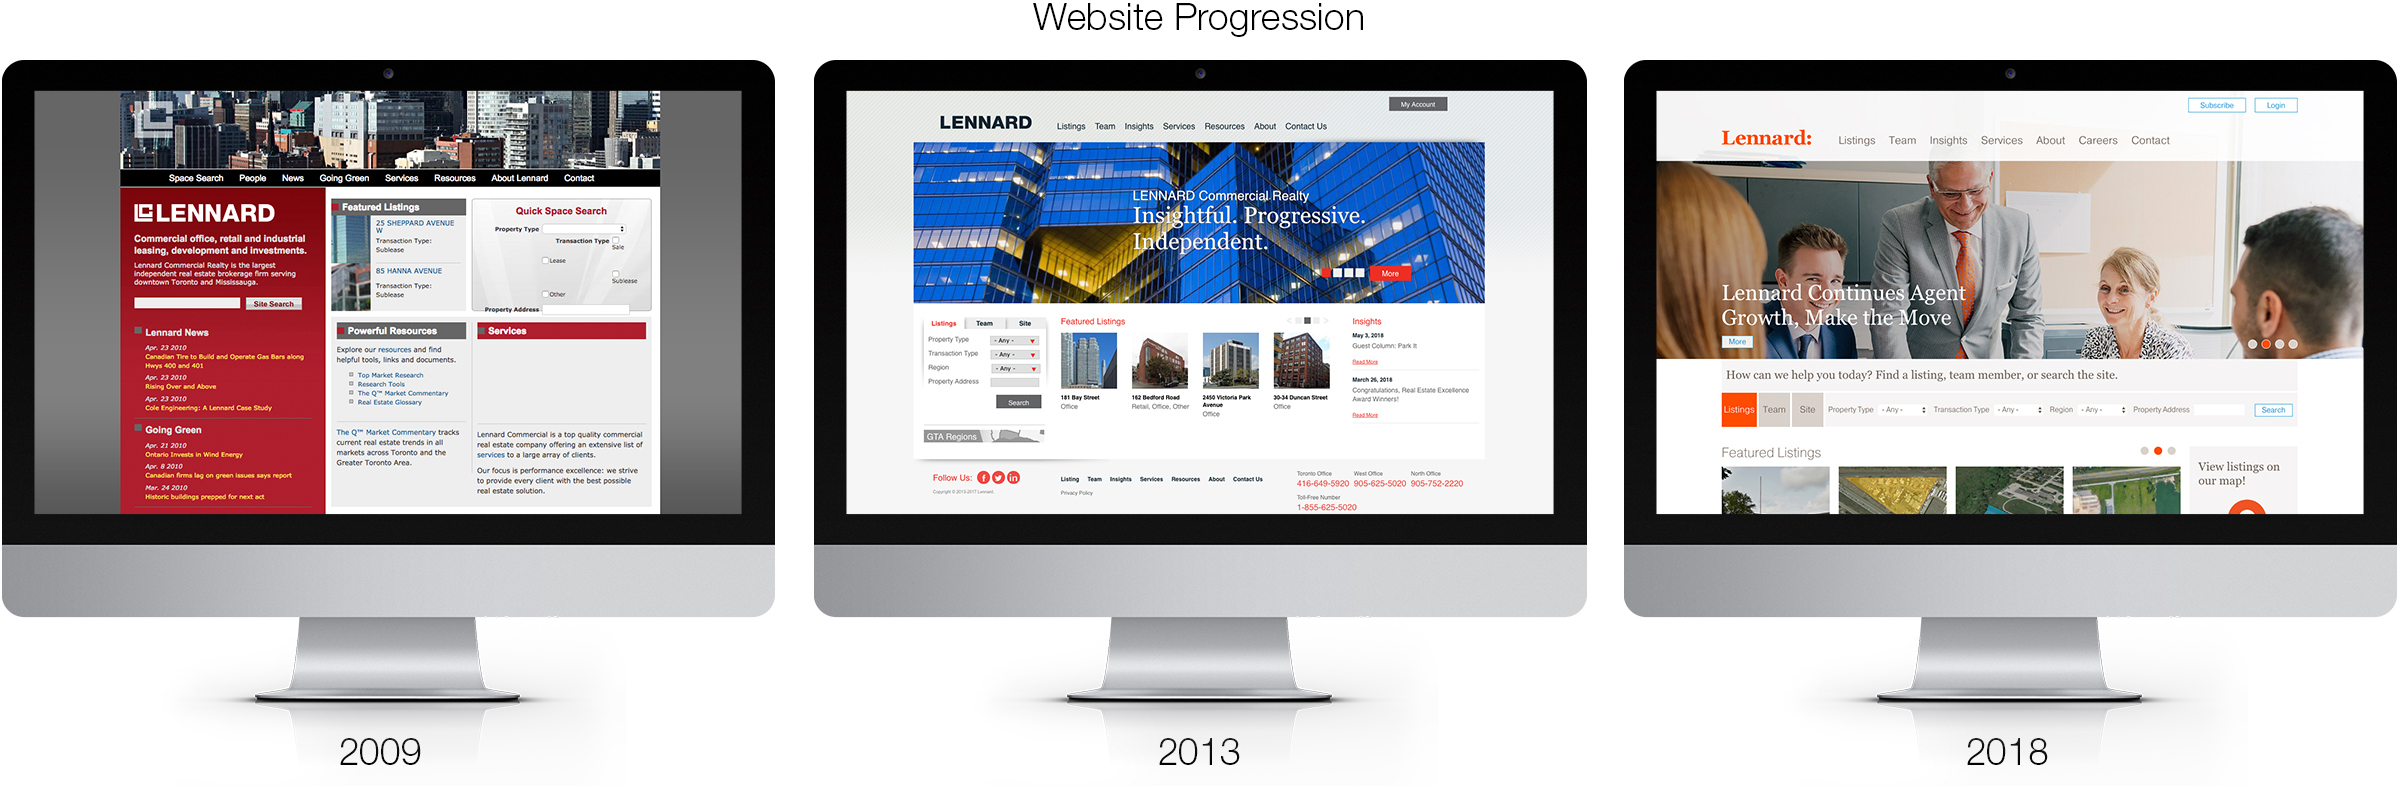 Website Progression